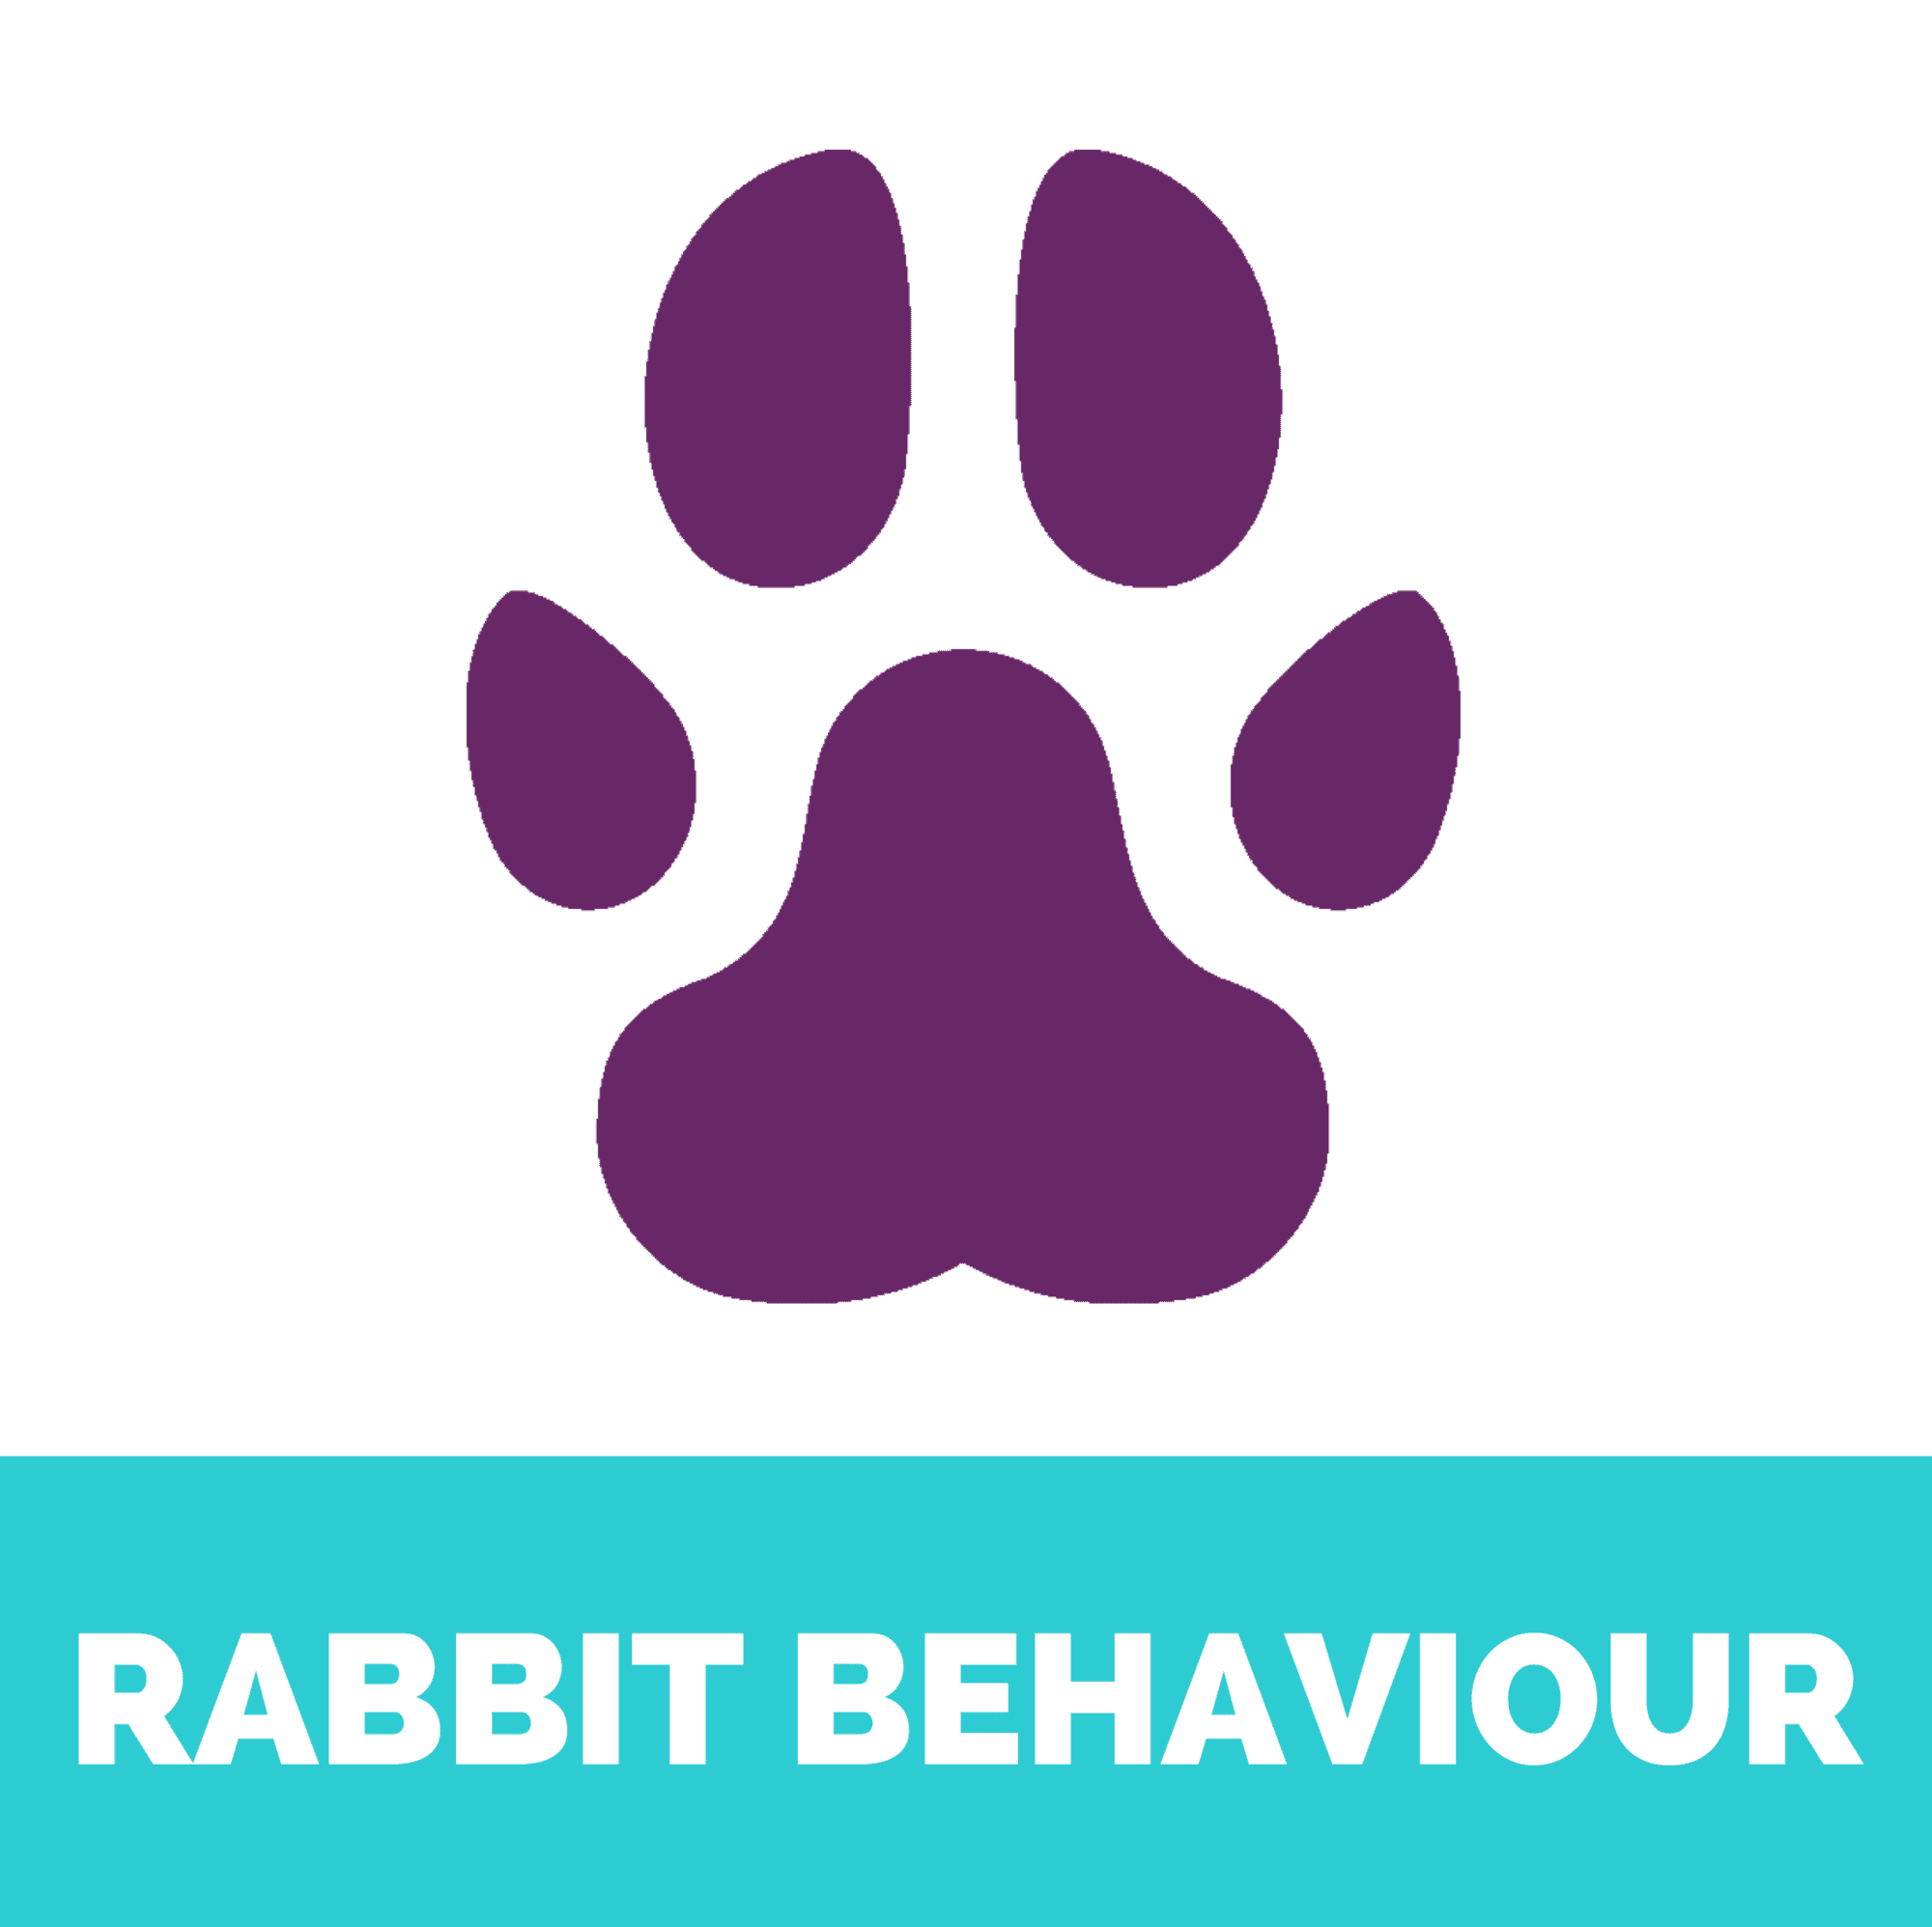 Rabbit behaviour